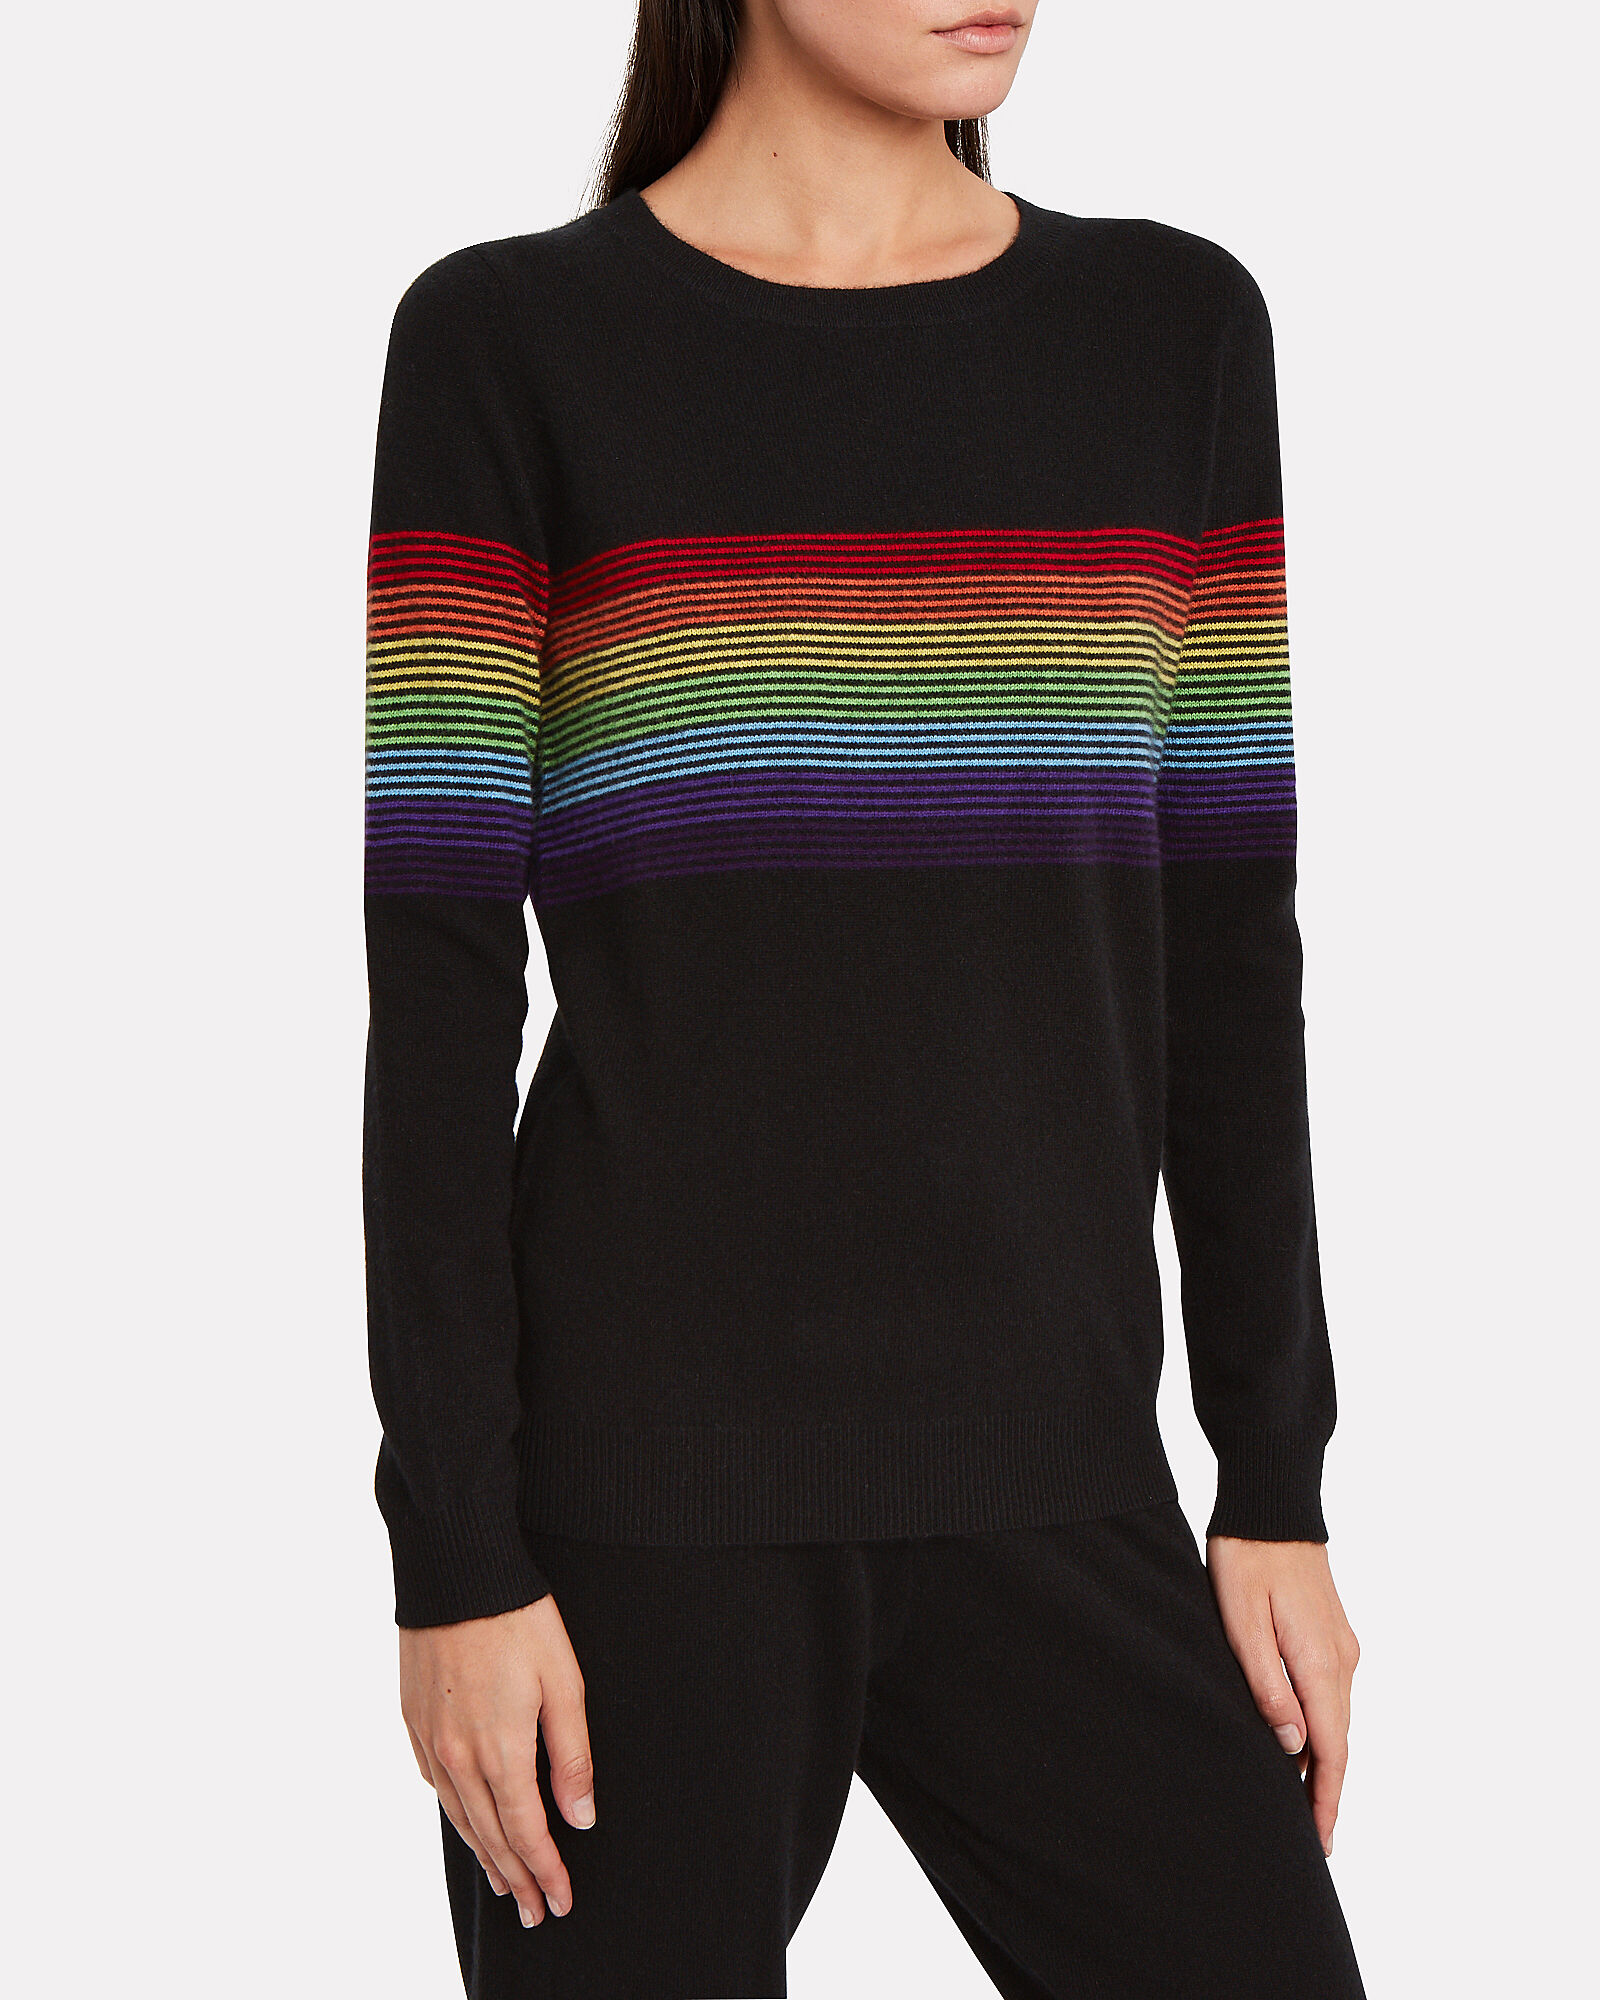 Humbert Rainbow Striped Cashmere Sweater, BLACK, hi-res